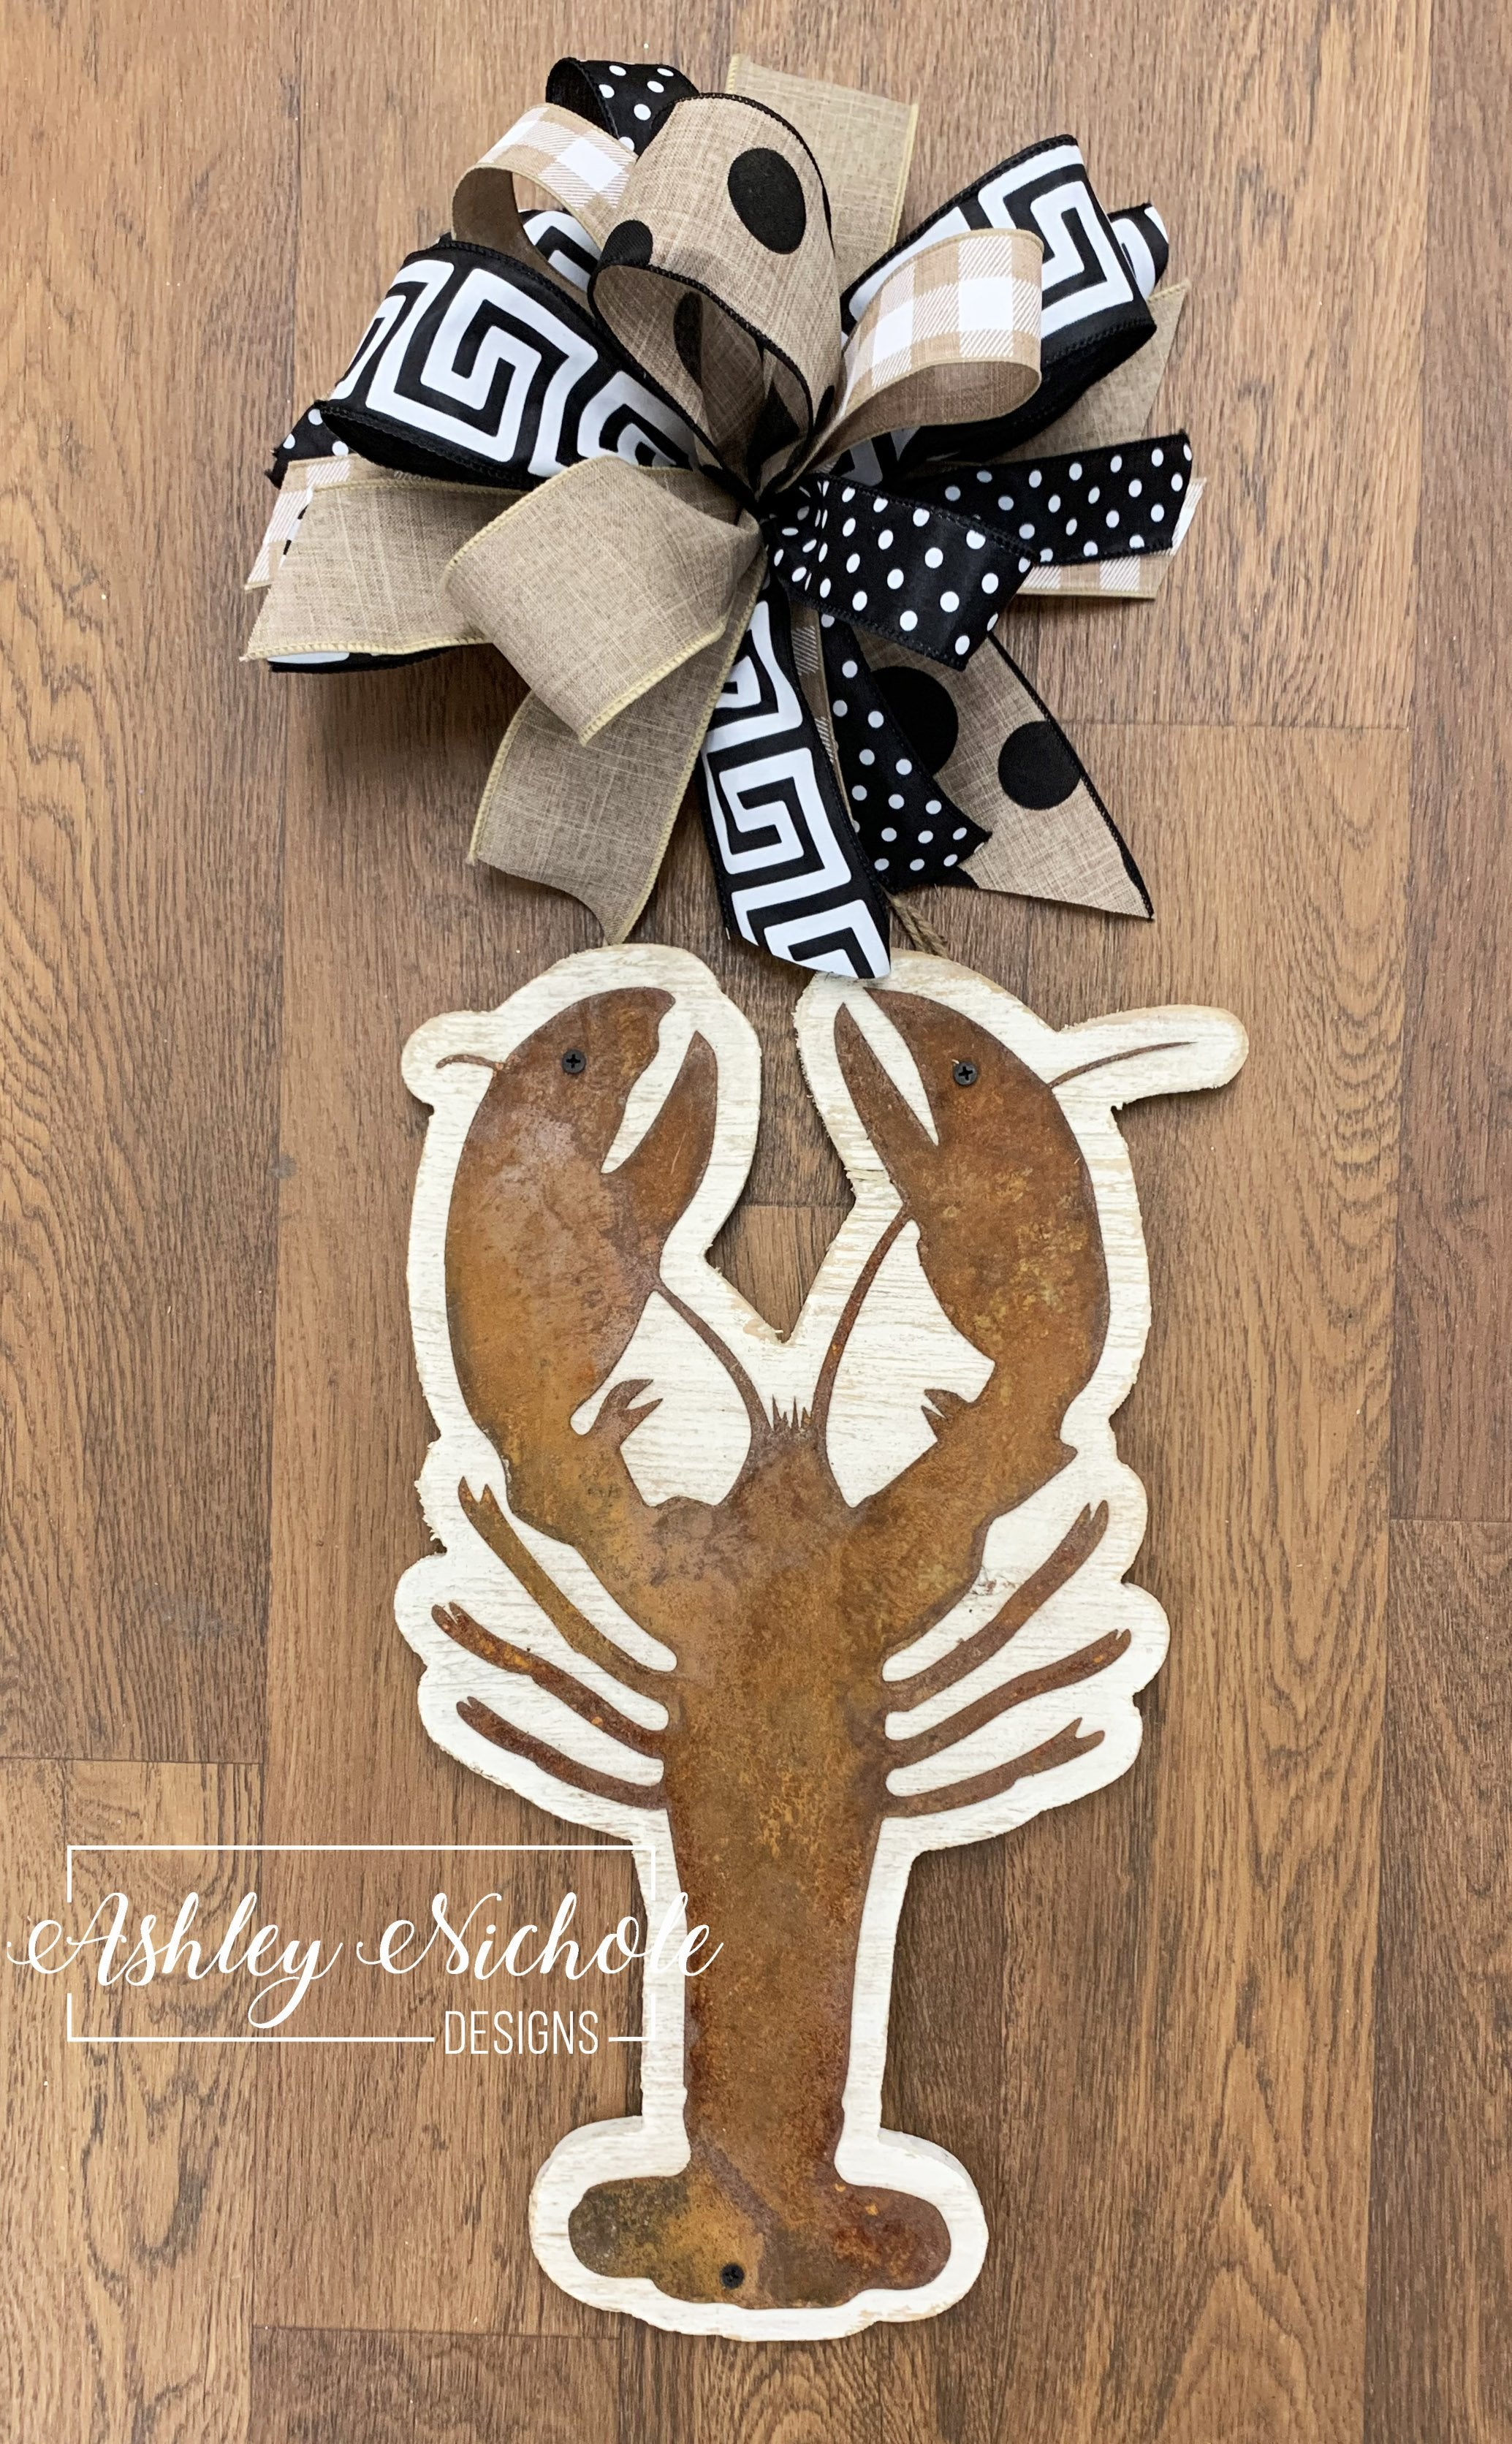 Rustic Crawfish Door Hanger